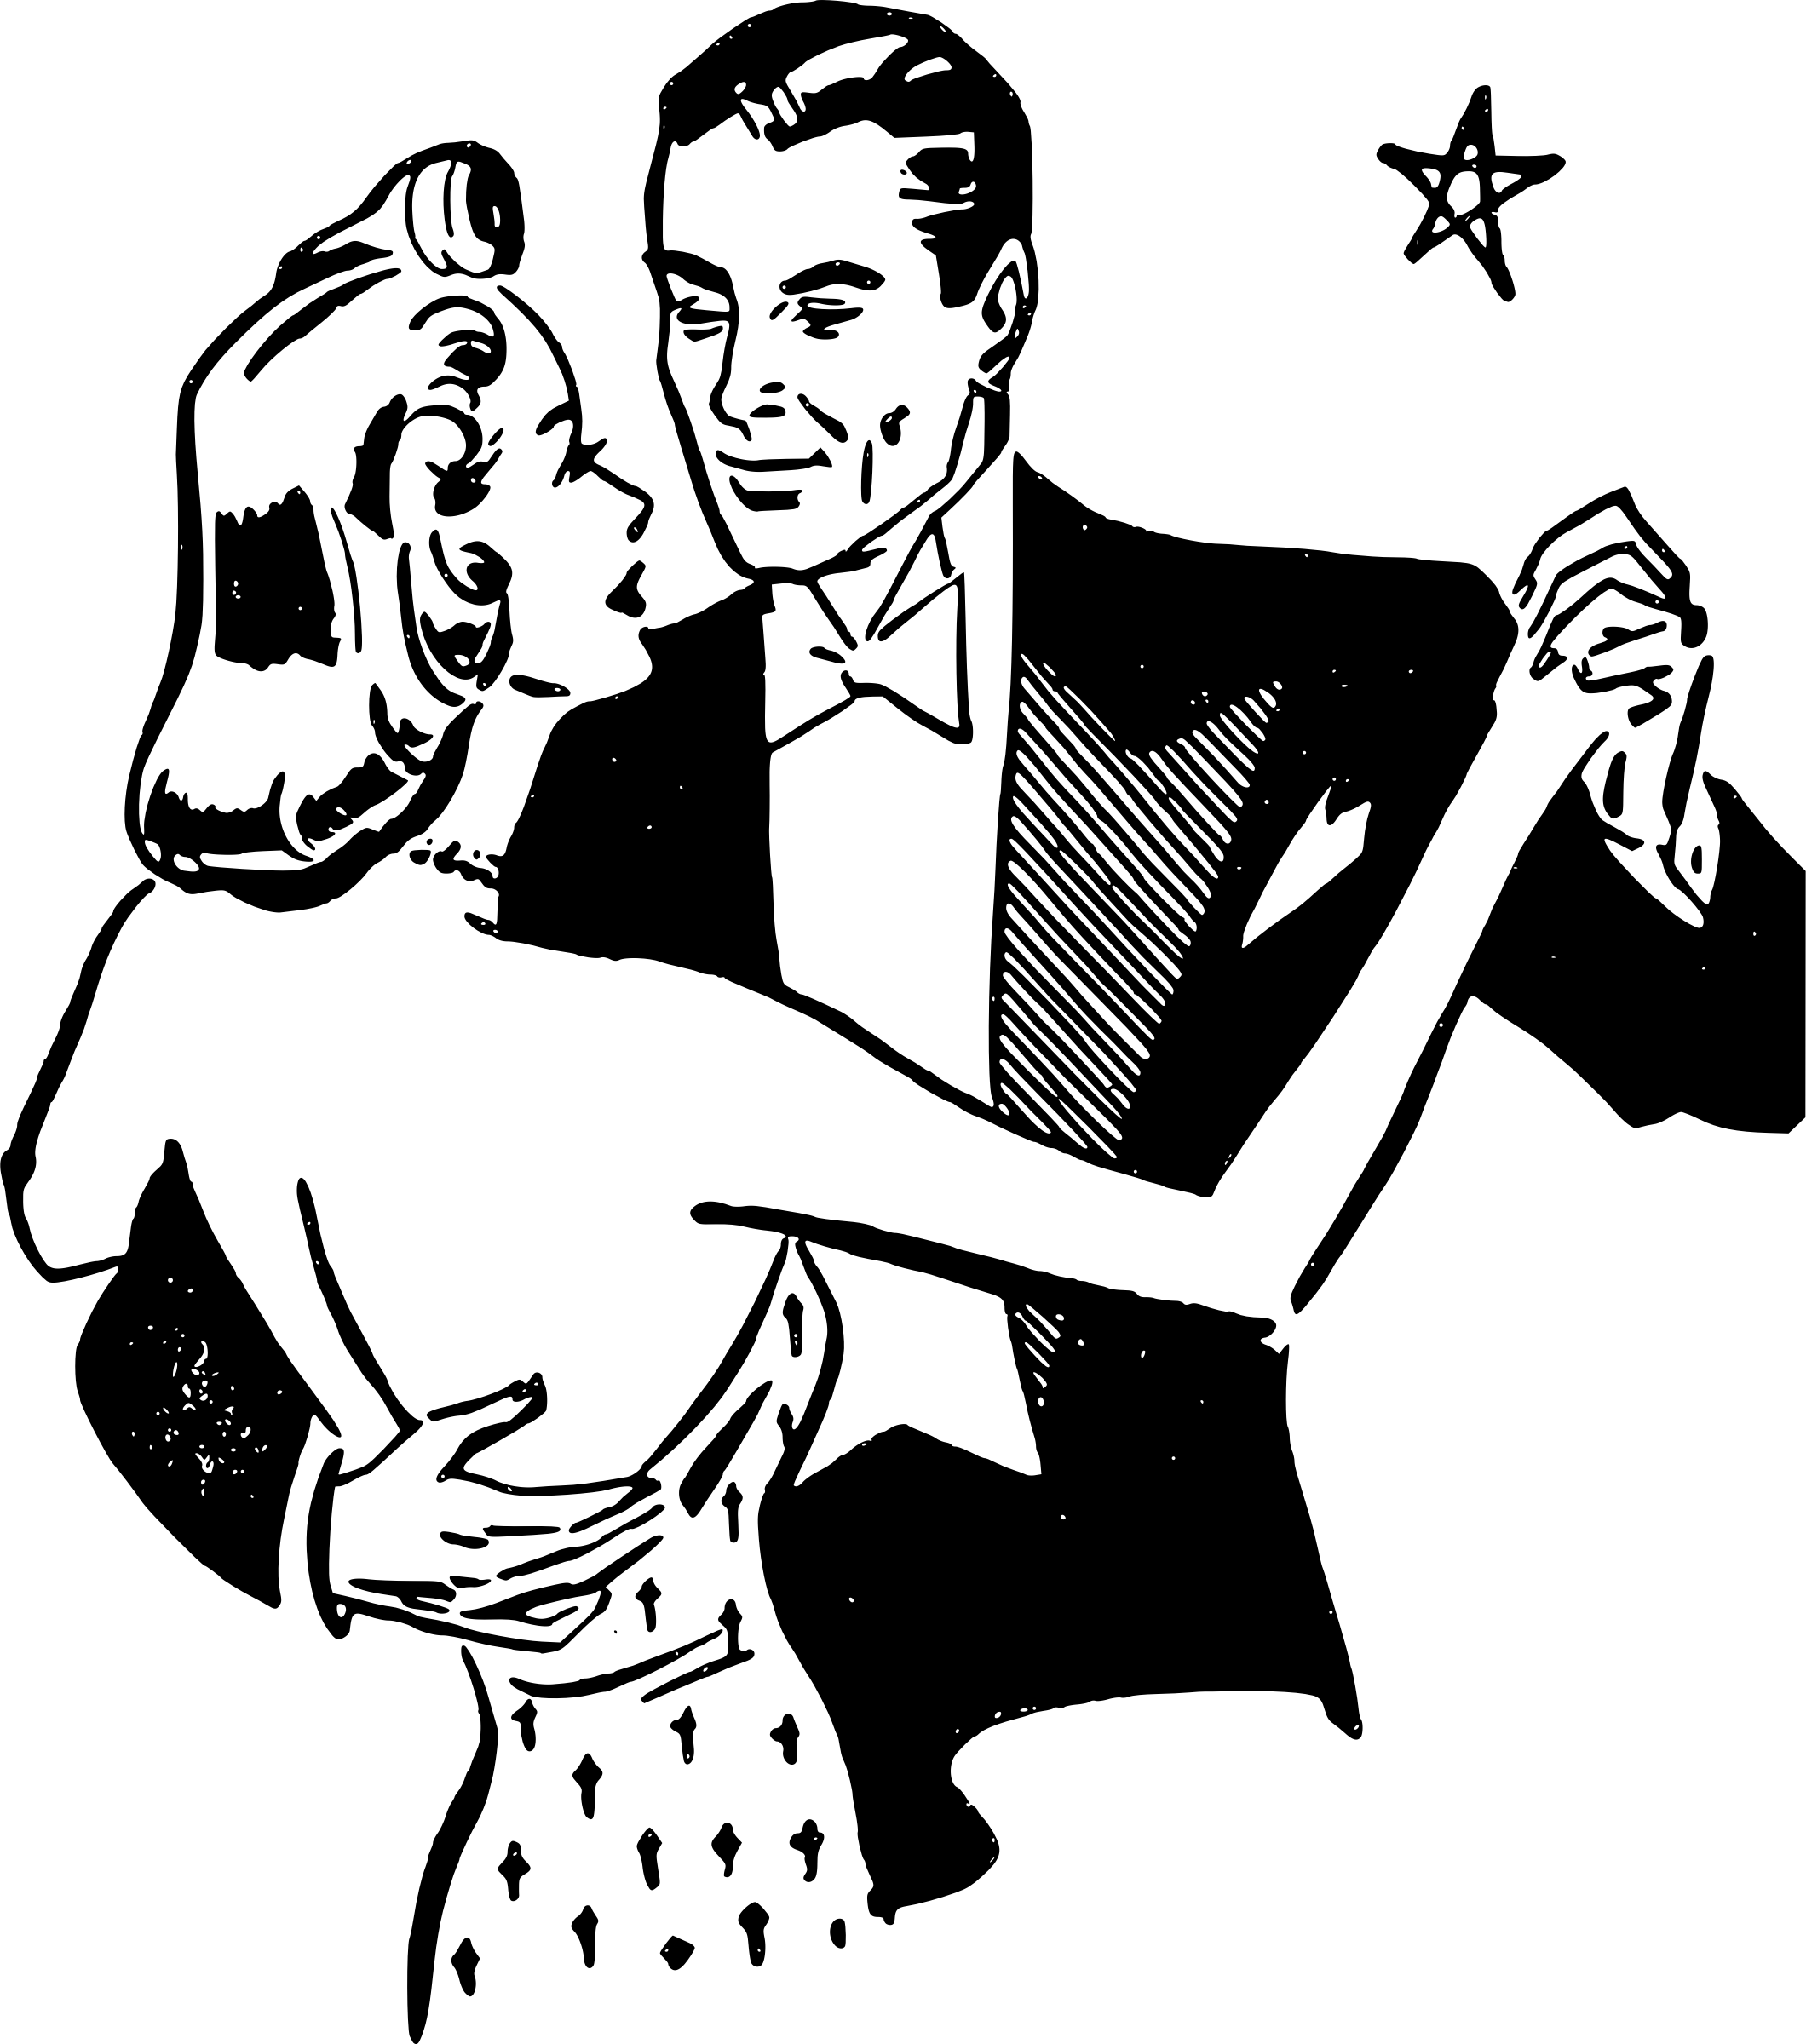 Dancing clipart vintage. Dancers couple transparent png